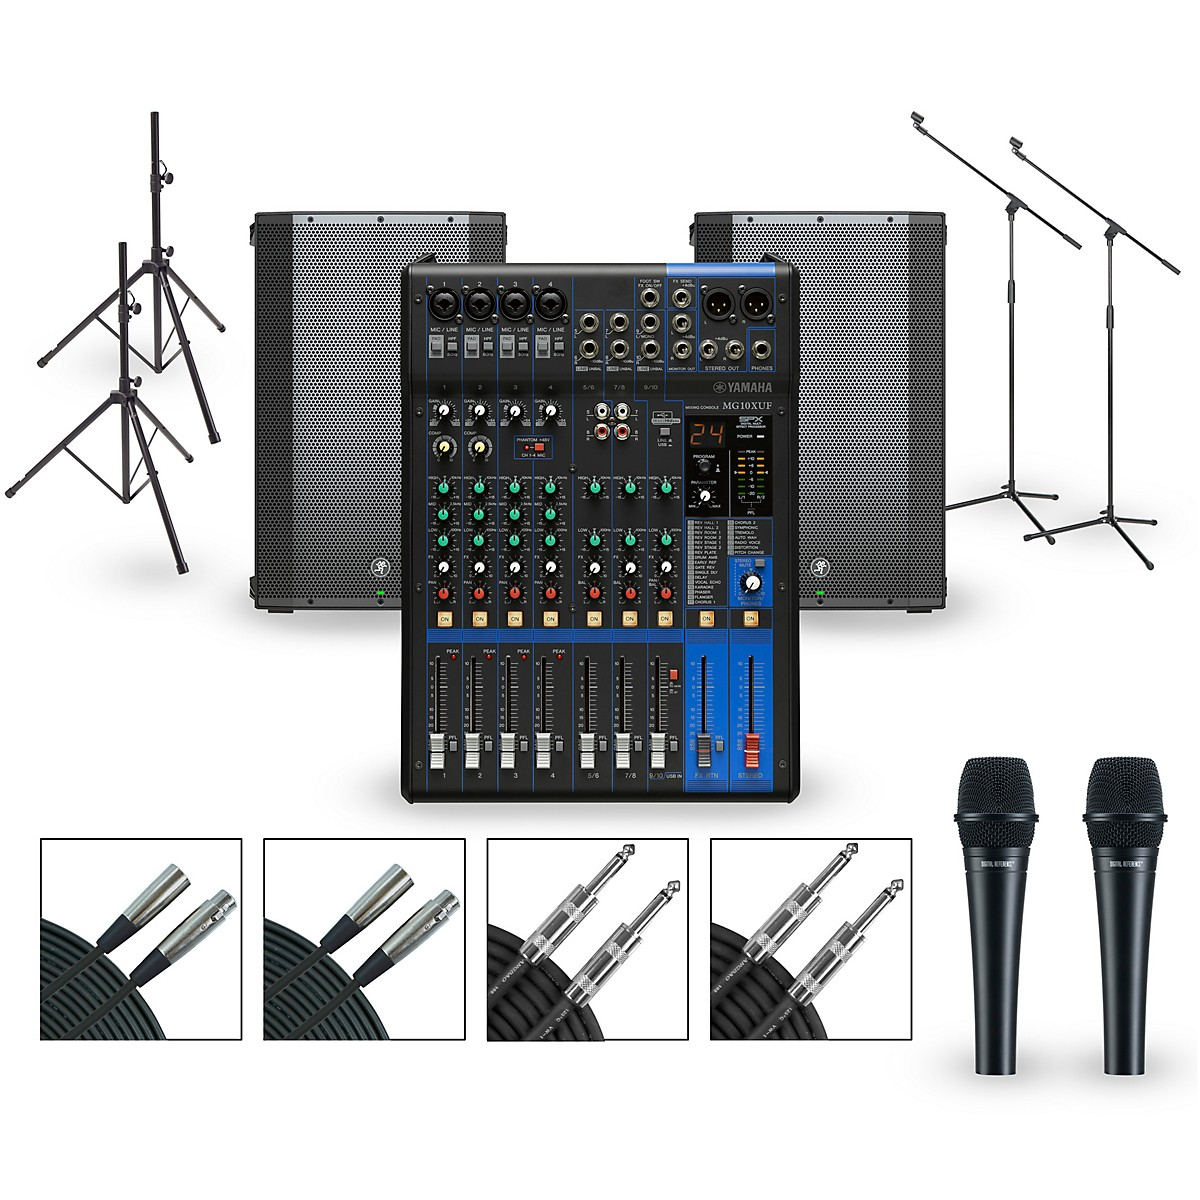 Yamaha Complete PA Package with MG10XUK Mixer and Mackie Thump BST Boosted Speakers